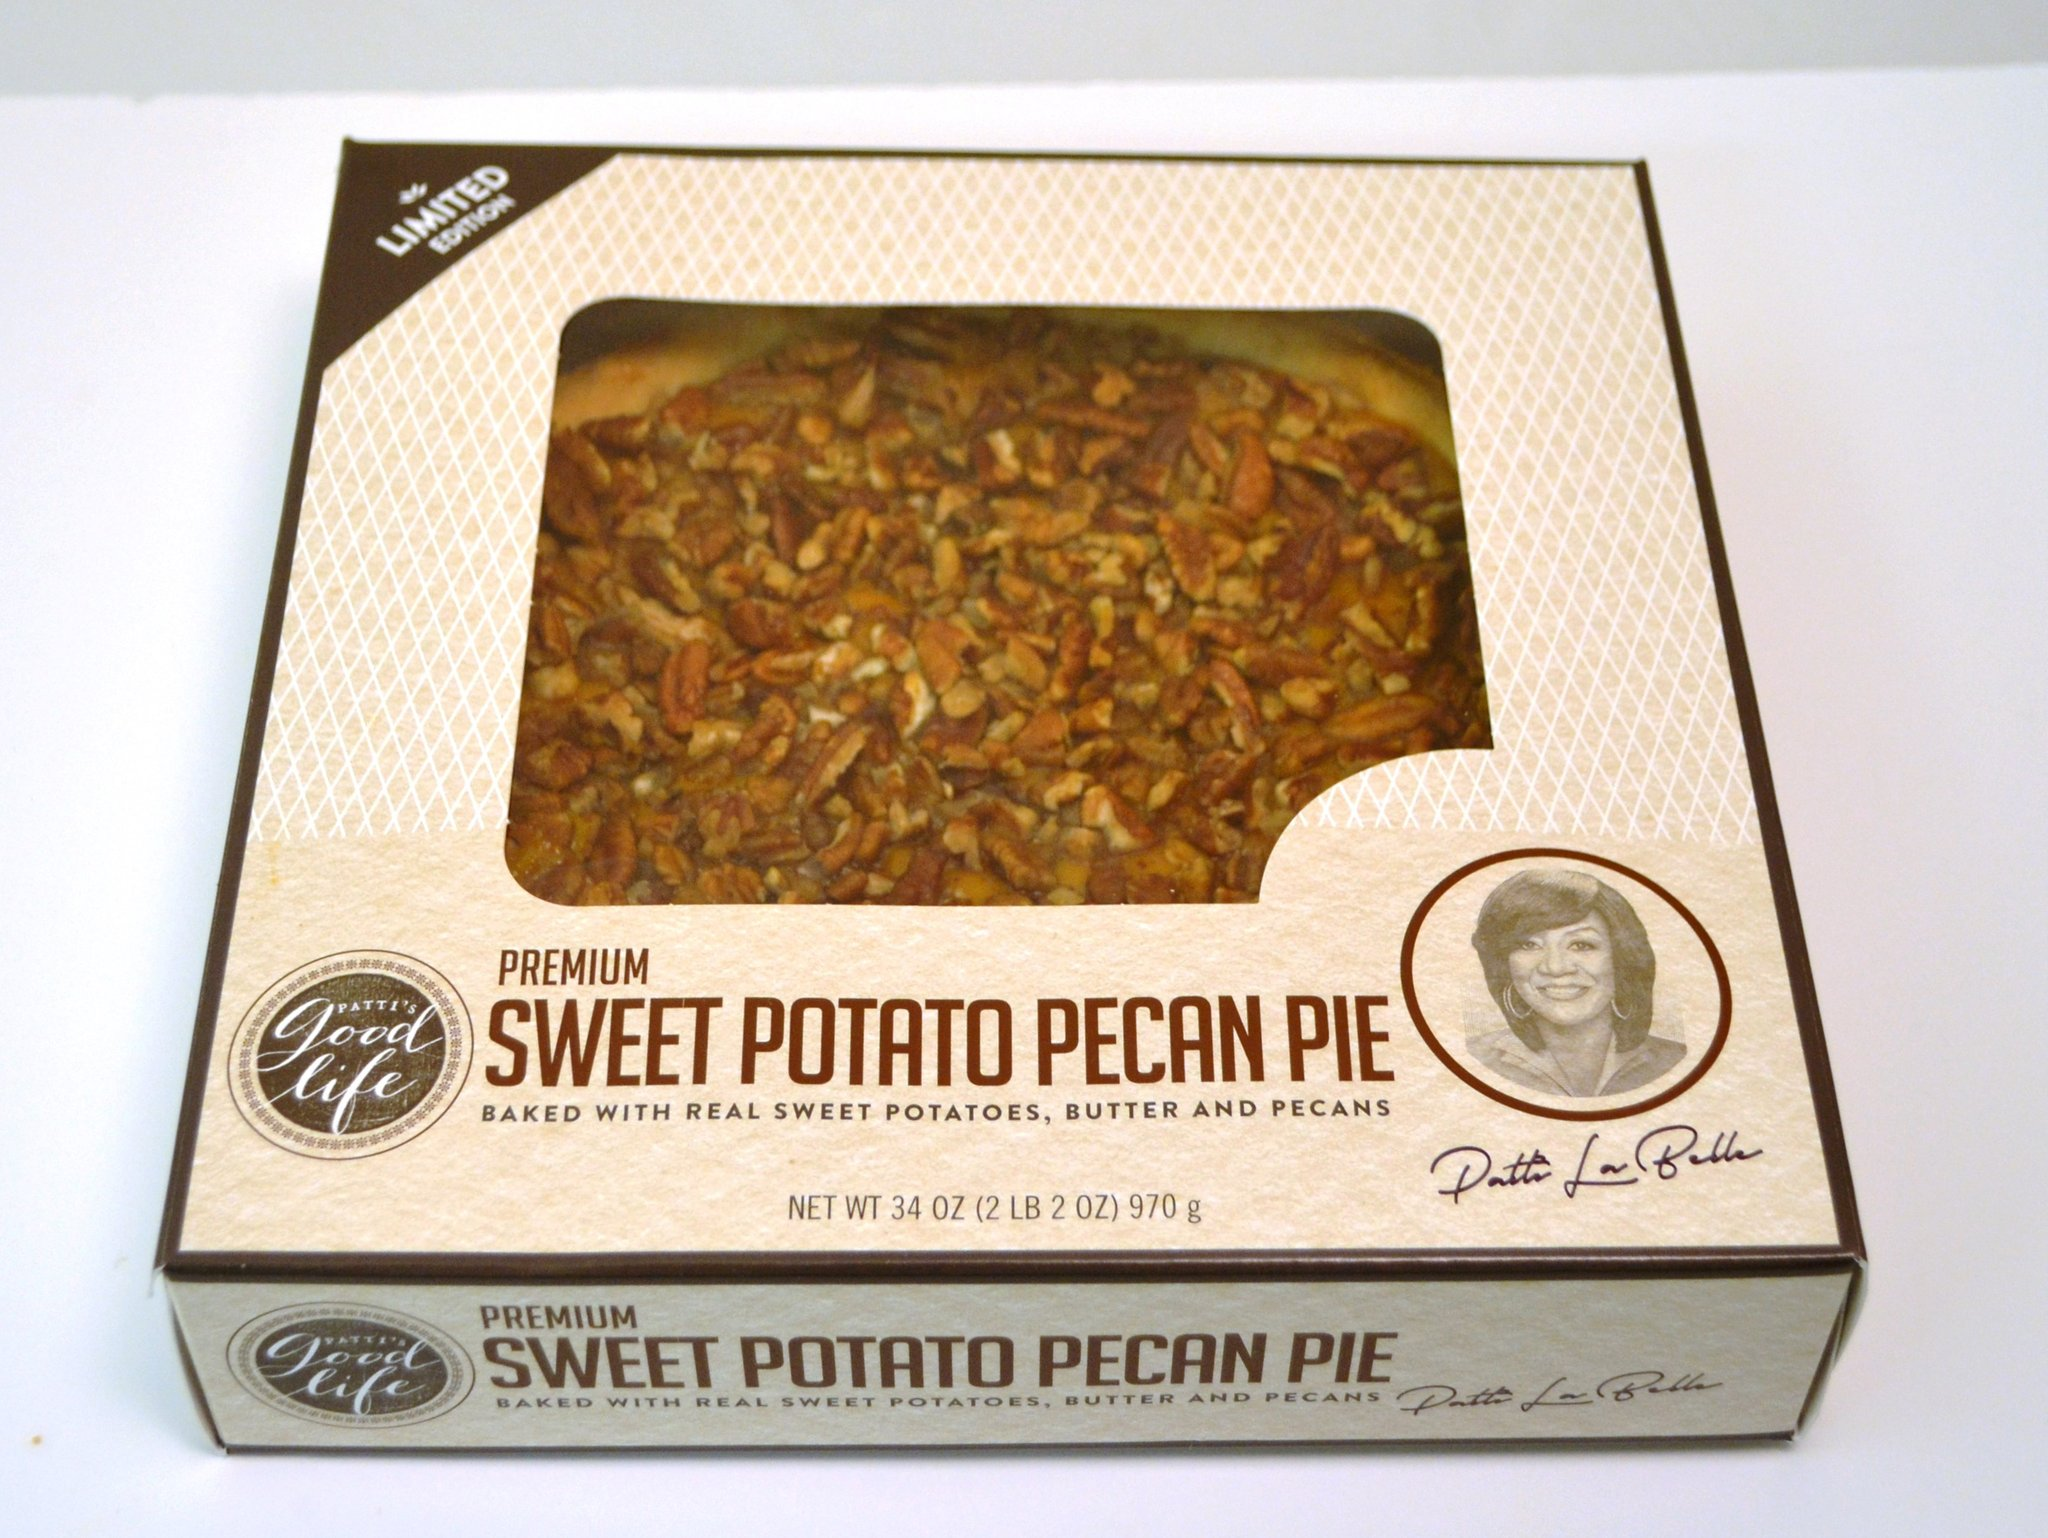 86d84f305aa13d1e_sweet-potato-pecan-carton.